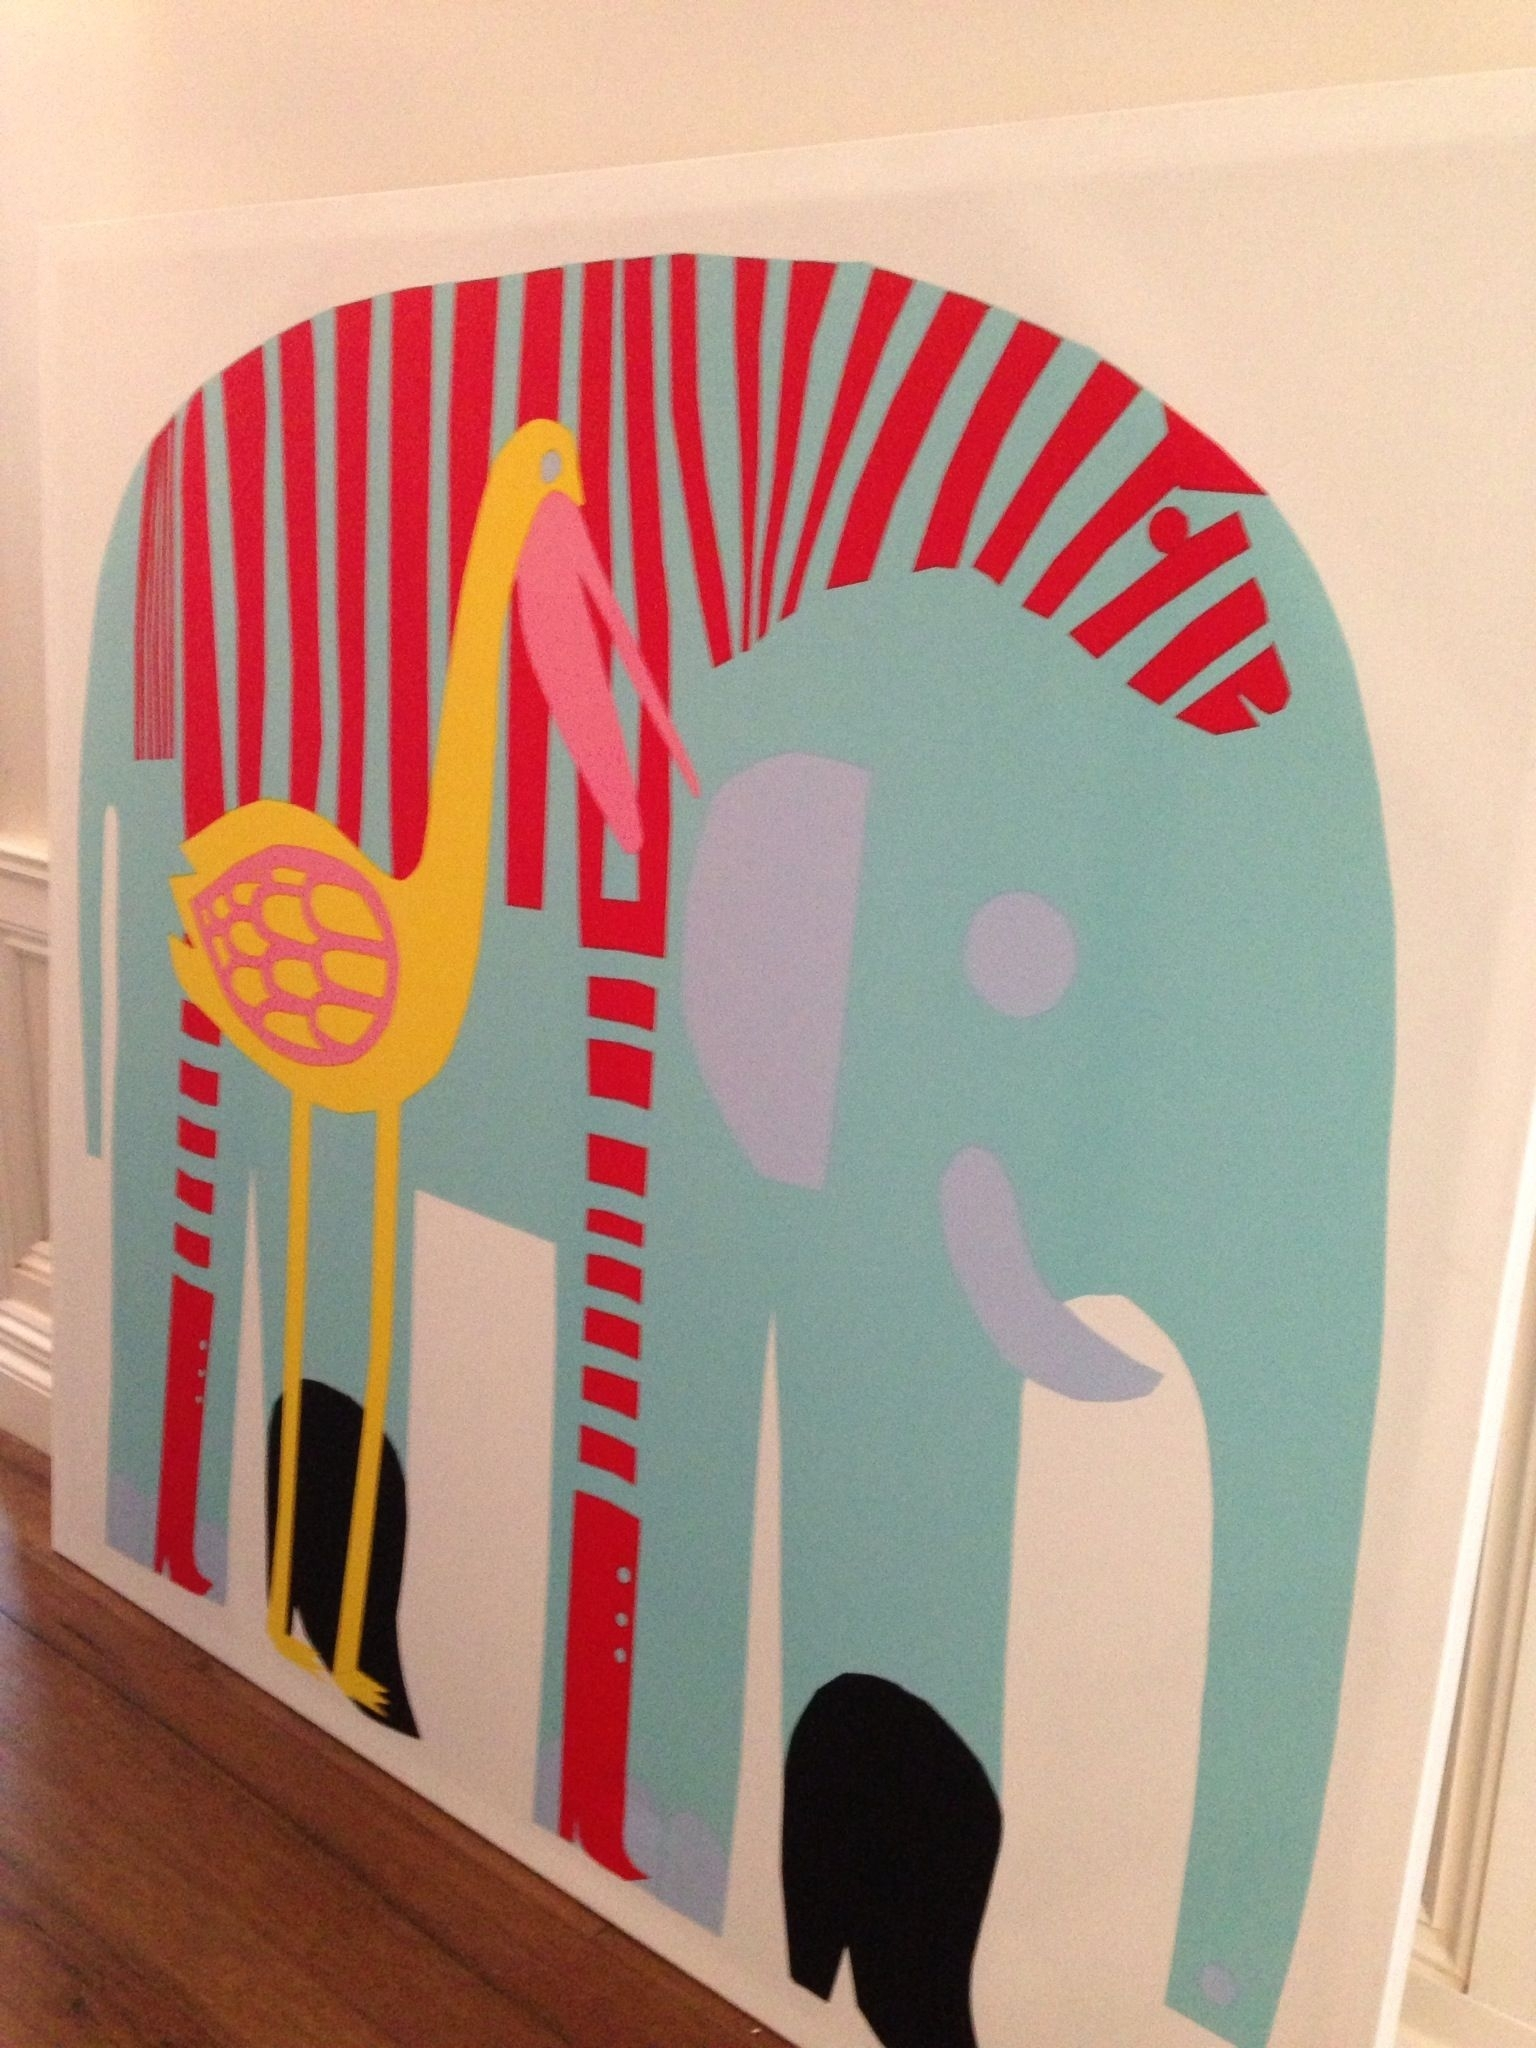 Marimekko Elephant Print For The Kids' Room. | Little Ones Inside 2017 Marimekko 'karkuteilla' Fabric Wall Art (Gallery 4 of 15)